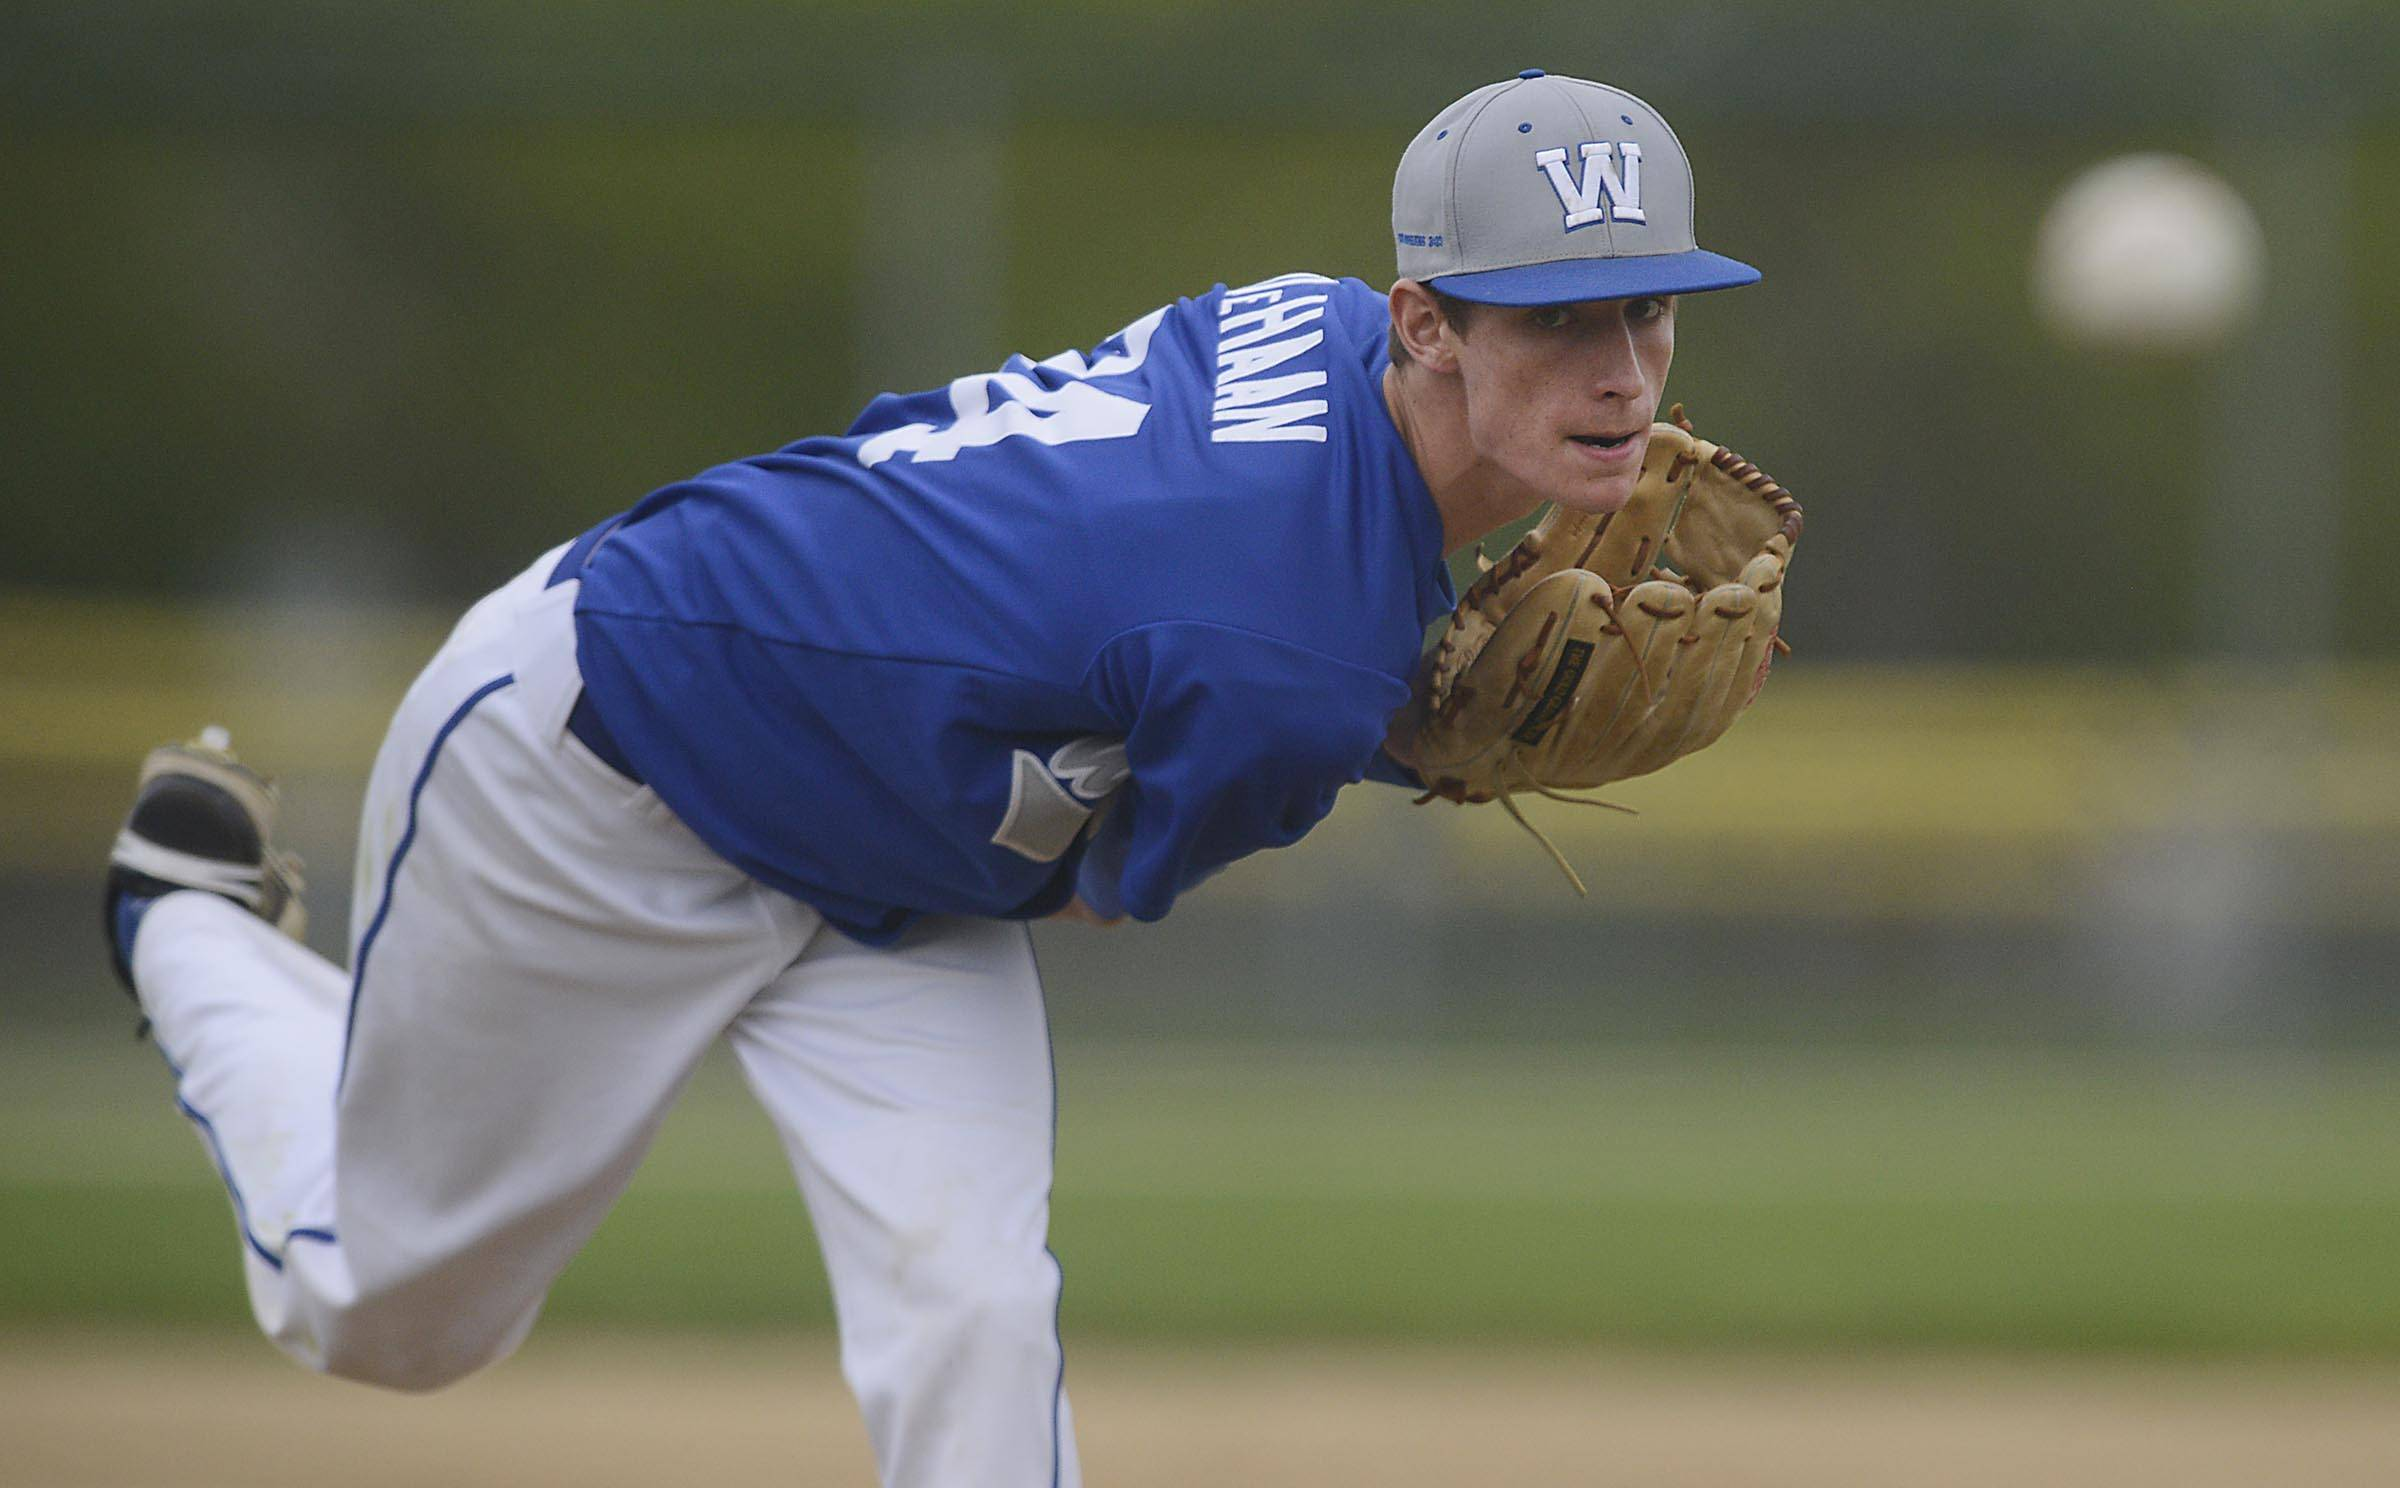 Westminster Christian's Clay DeHaan delivers against St. Edward Monday in the Class 2A regional game at Wing Park in Elgin.